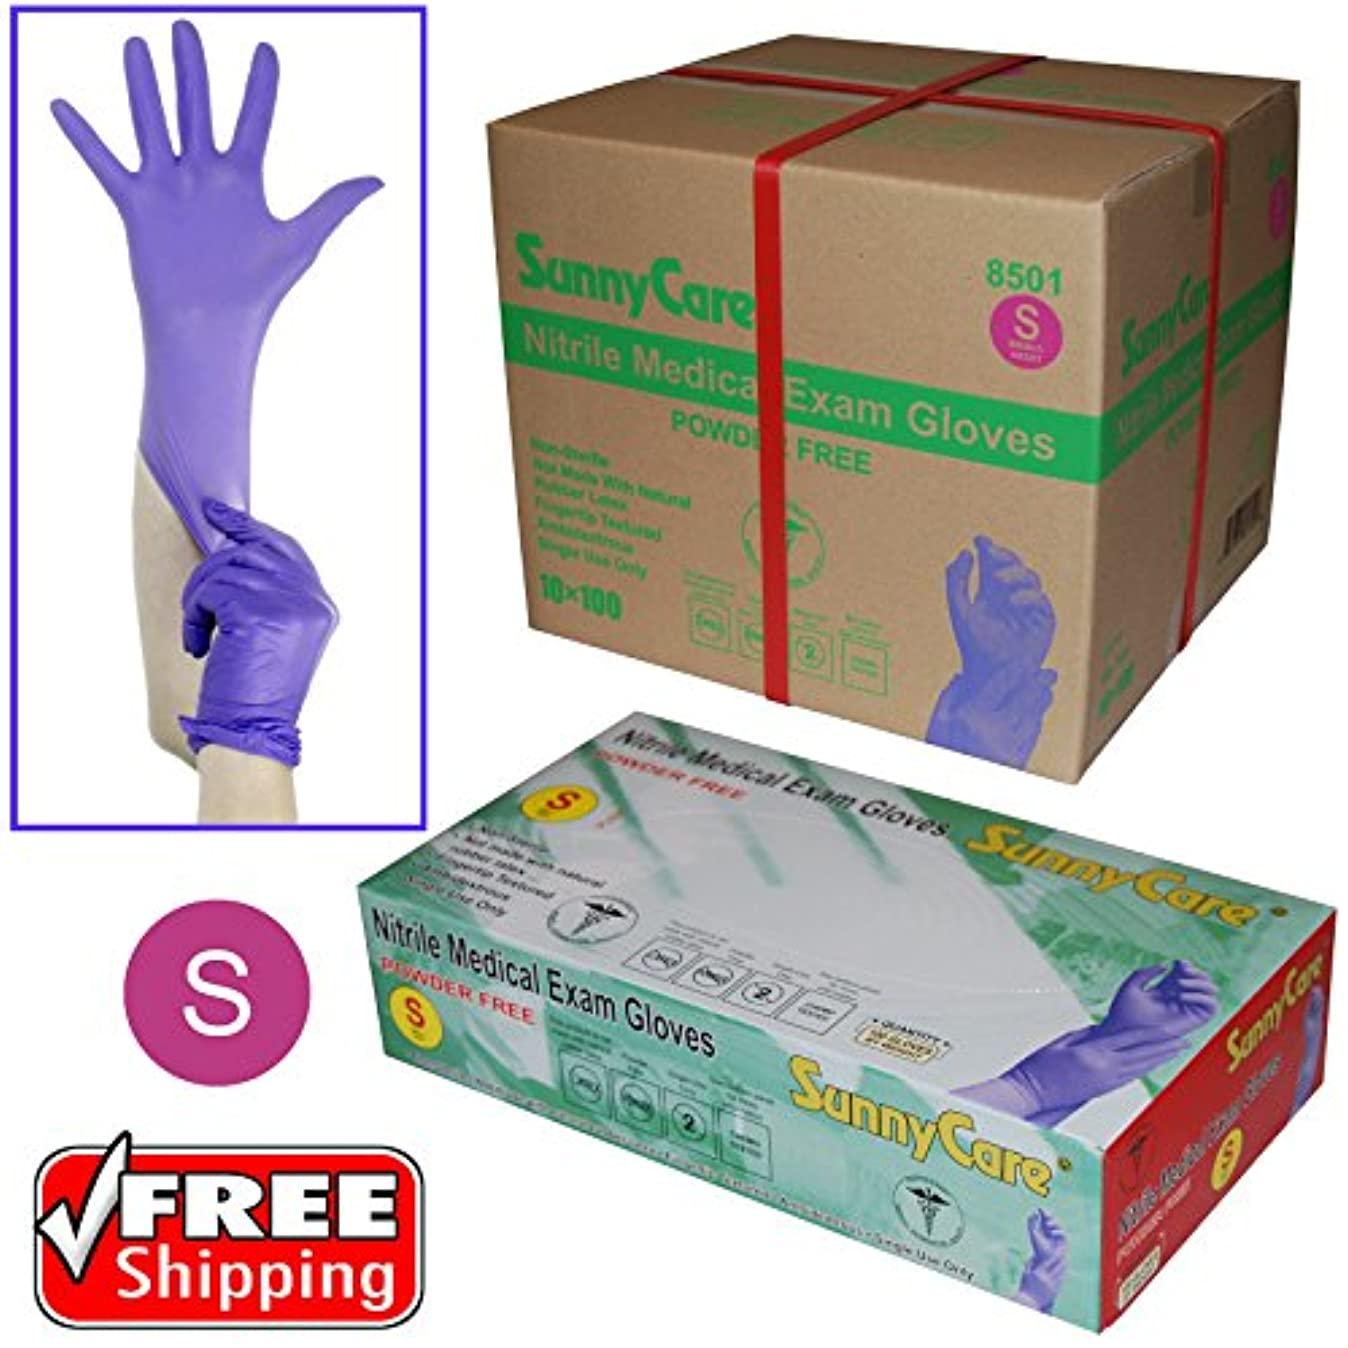 位置する気性石のSunnycare #8501 1000pcs 3.5mil Soft Nitrile Powder-free Medical Exam Gloves (Latex Vinyl Free) by SunnyCare